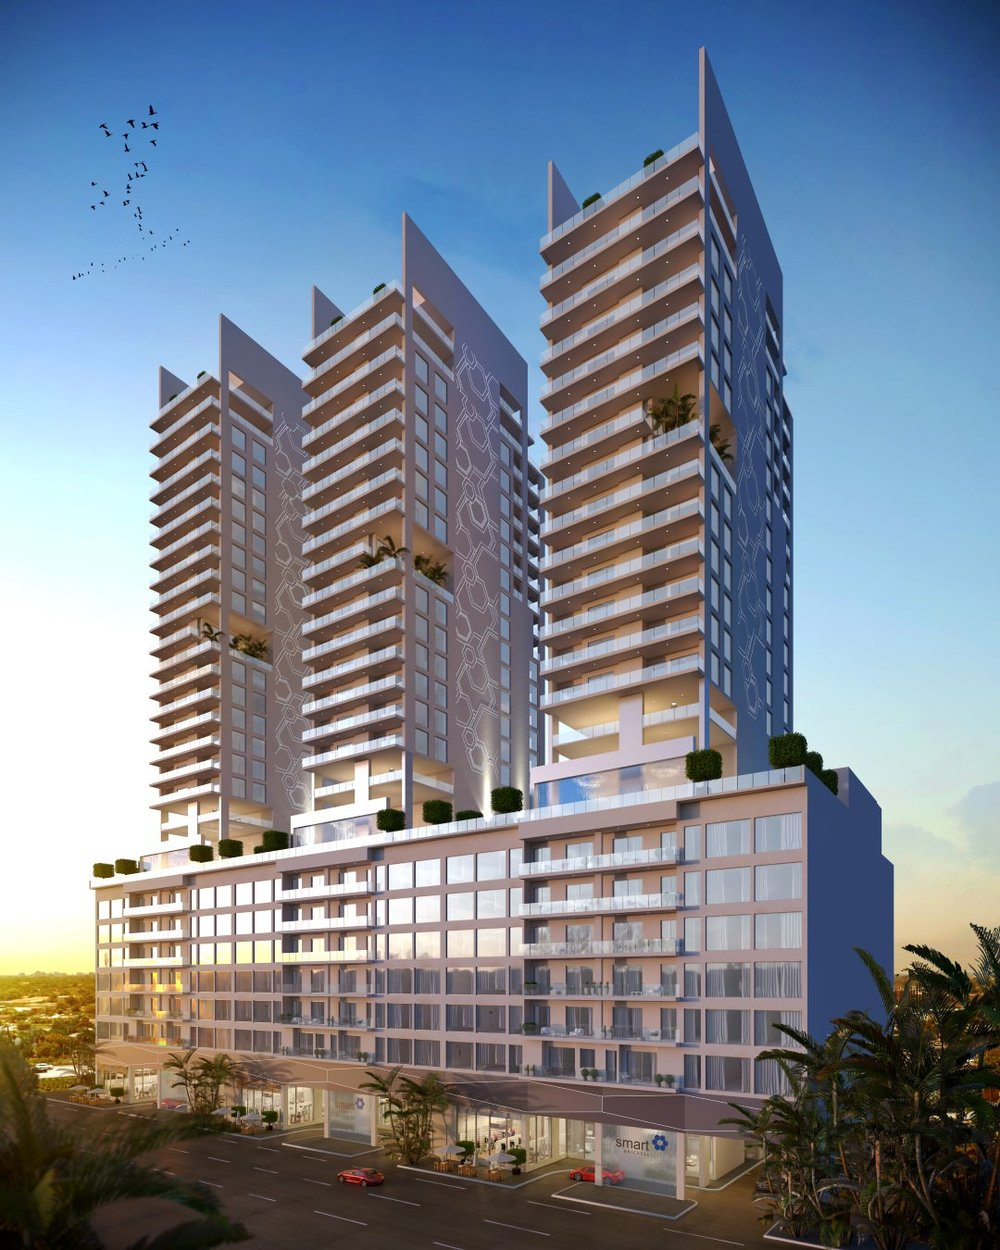 Sales At Habitat Development's Smart Brickell Reach 50% In Phase 1, To Convert To Contract